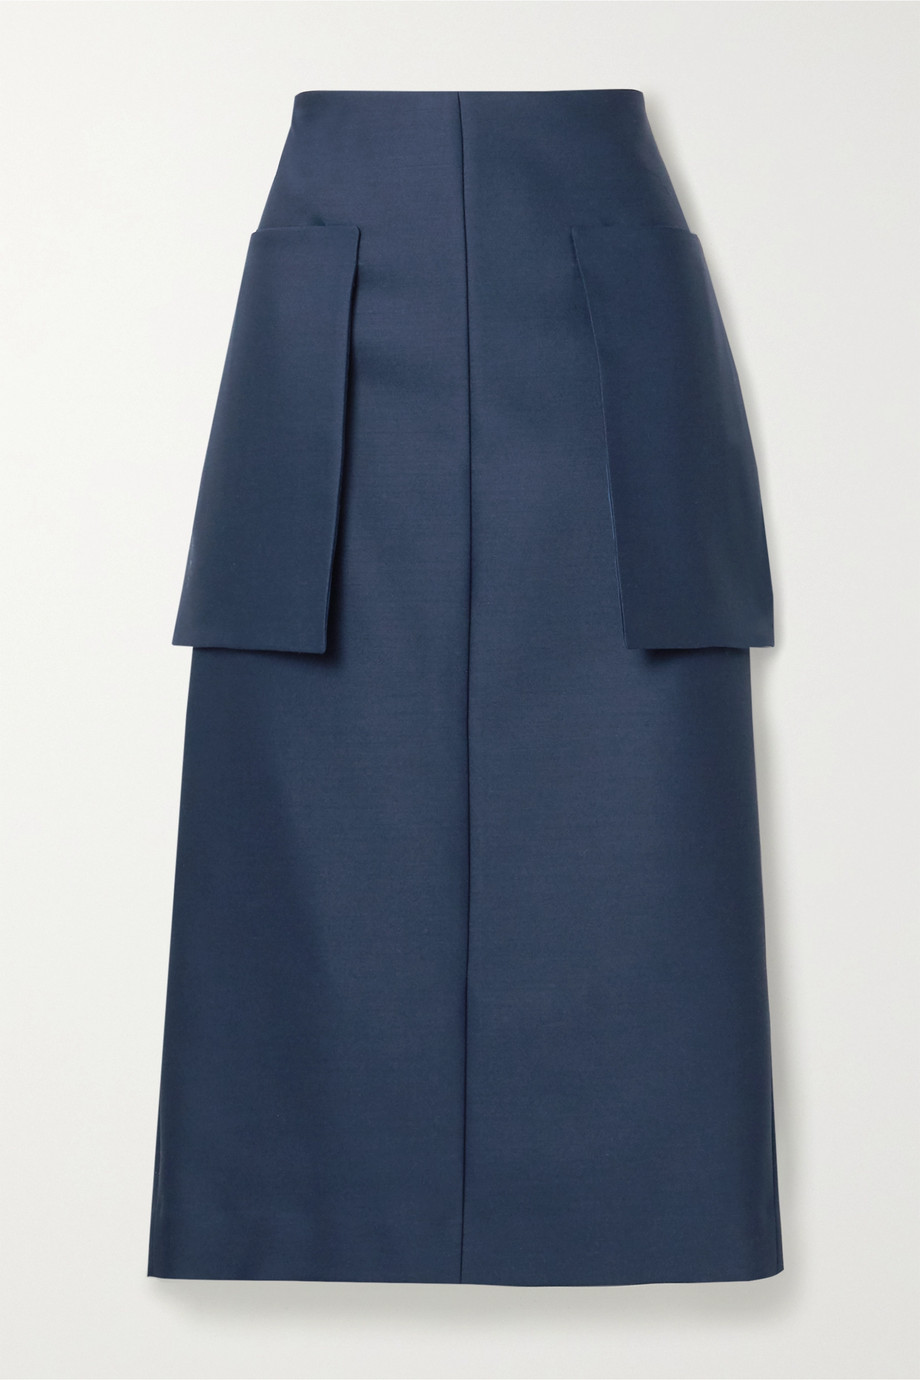 The Row Jenna wool-blend midi skirt